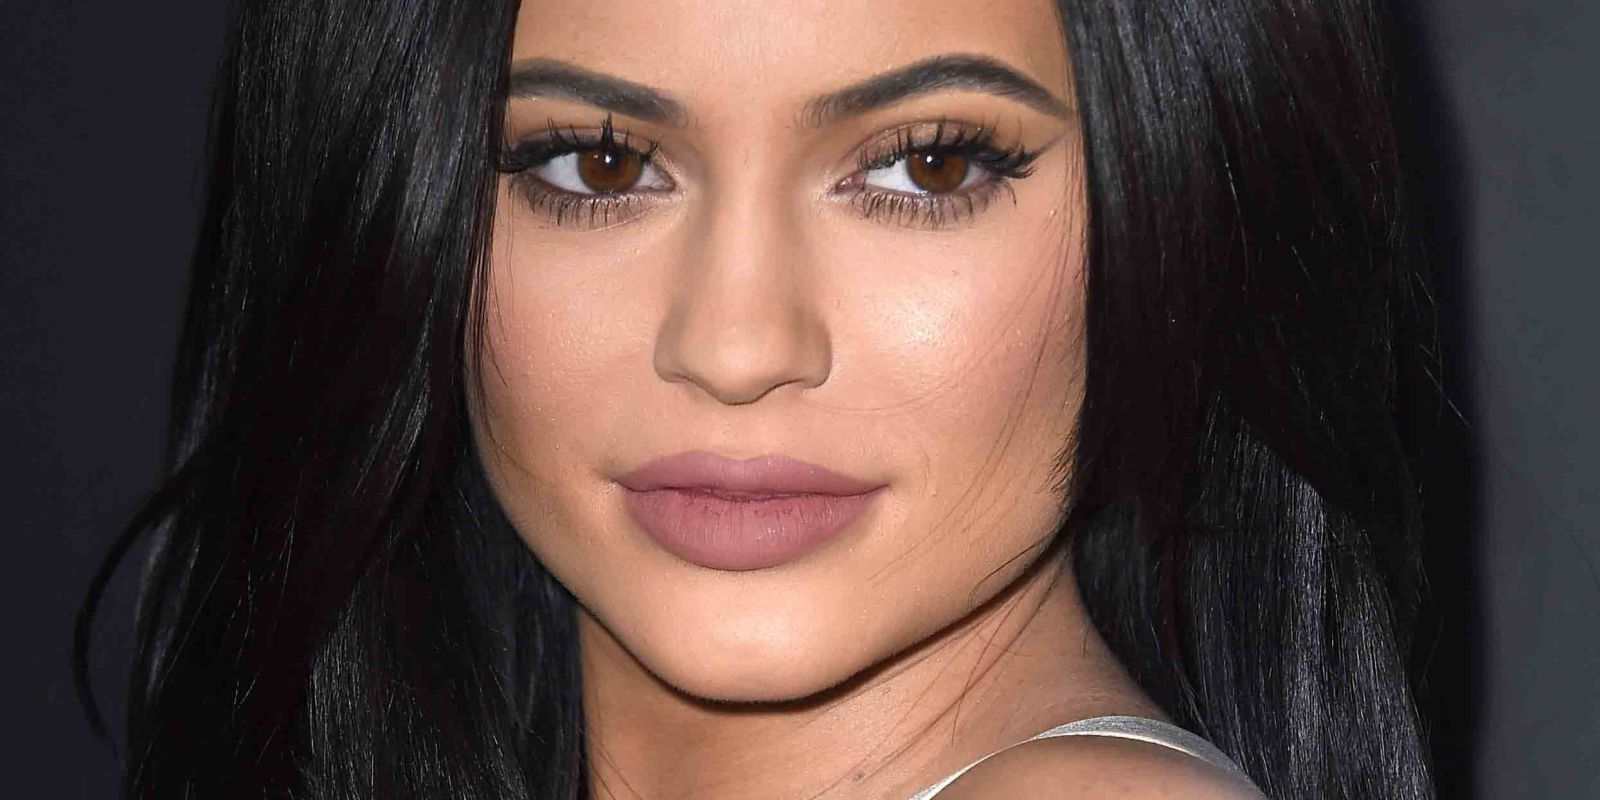 Kylie's birthday edition makeup collection sells out within five minutes